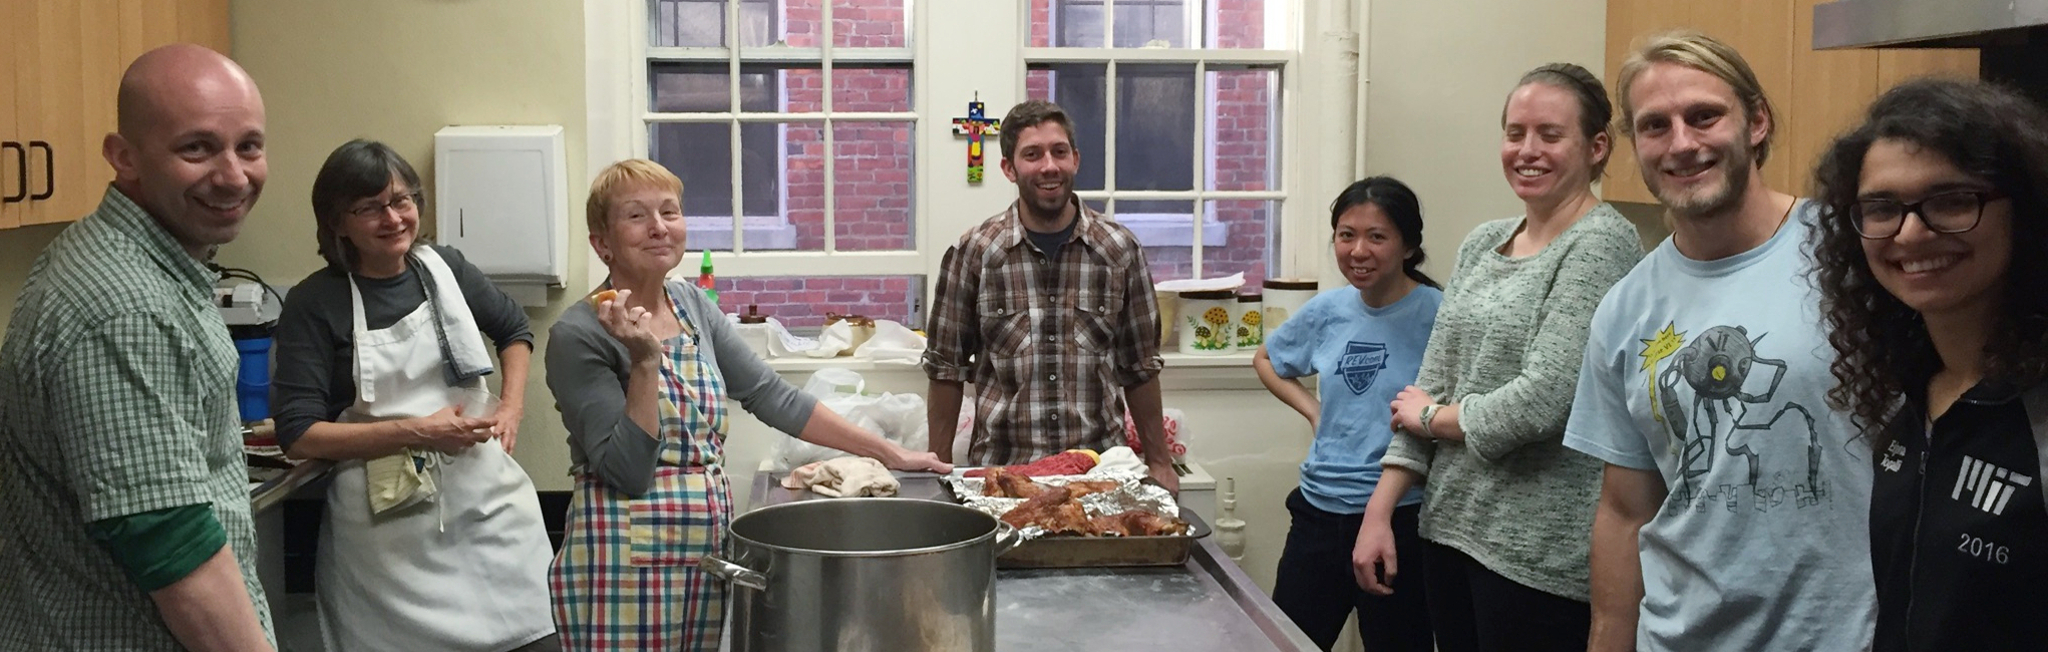 Photograph of a CommonCare volunteers in the kitchen of Saint Peter's Episcopal Church